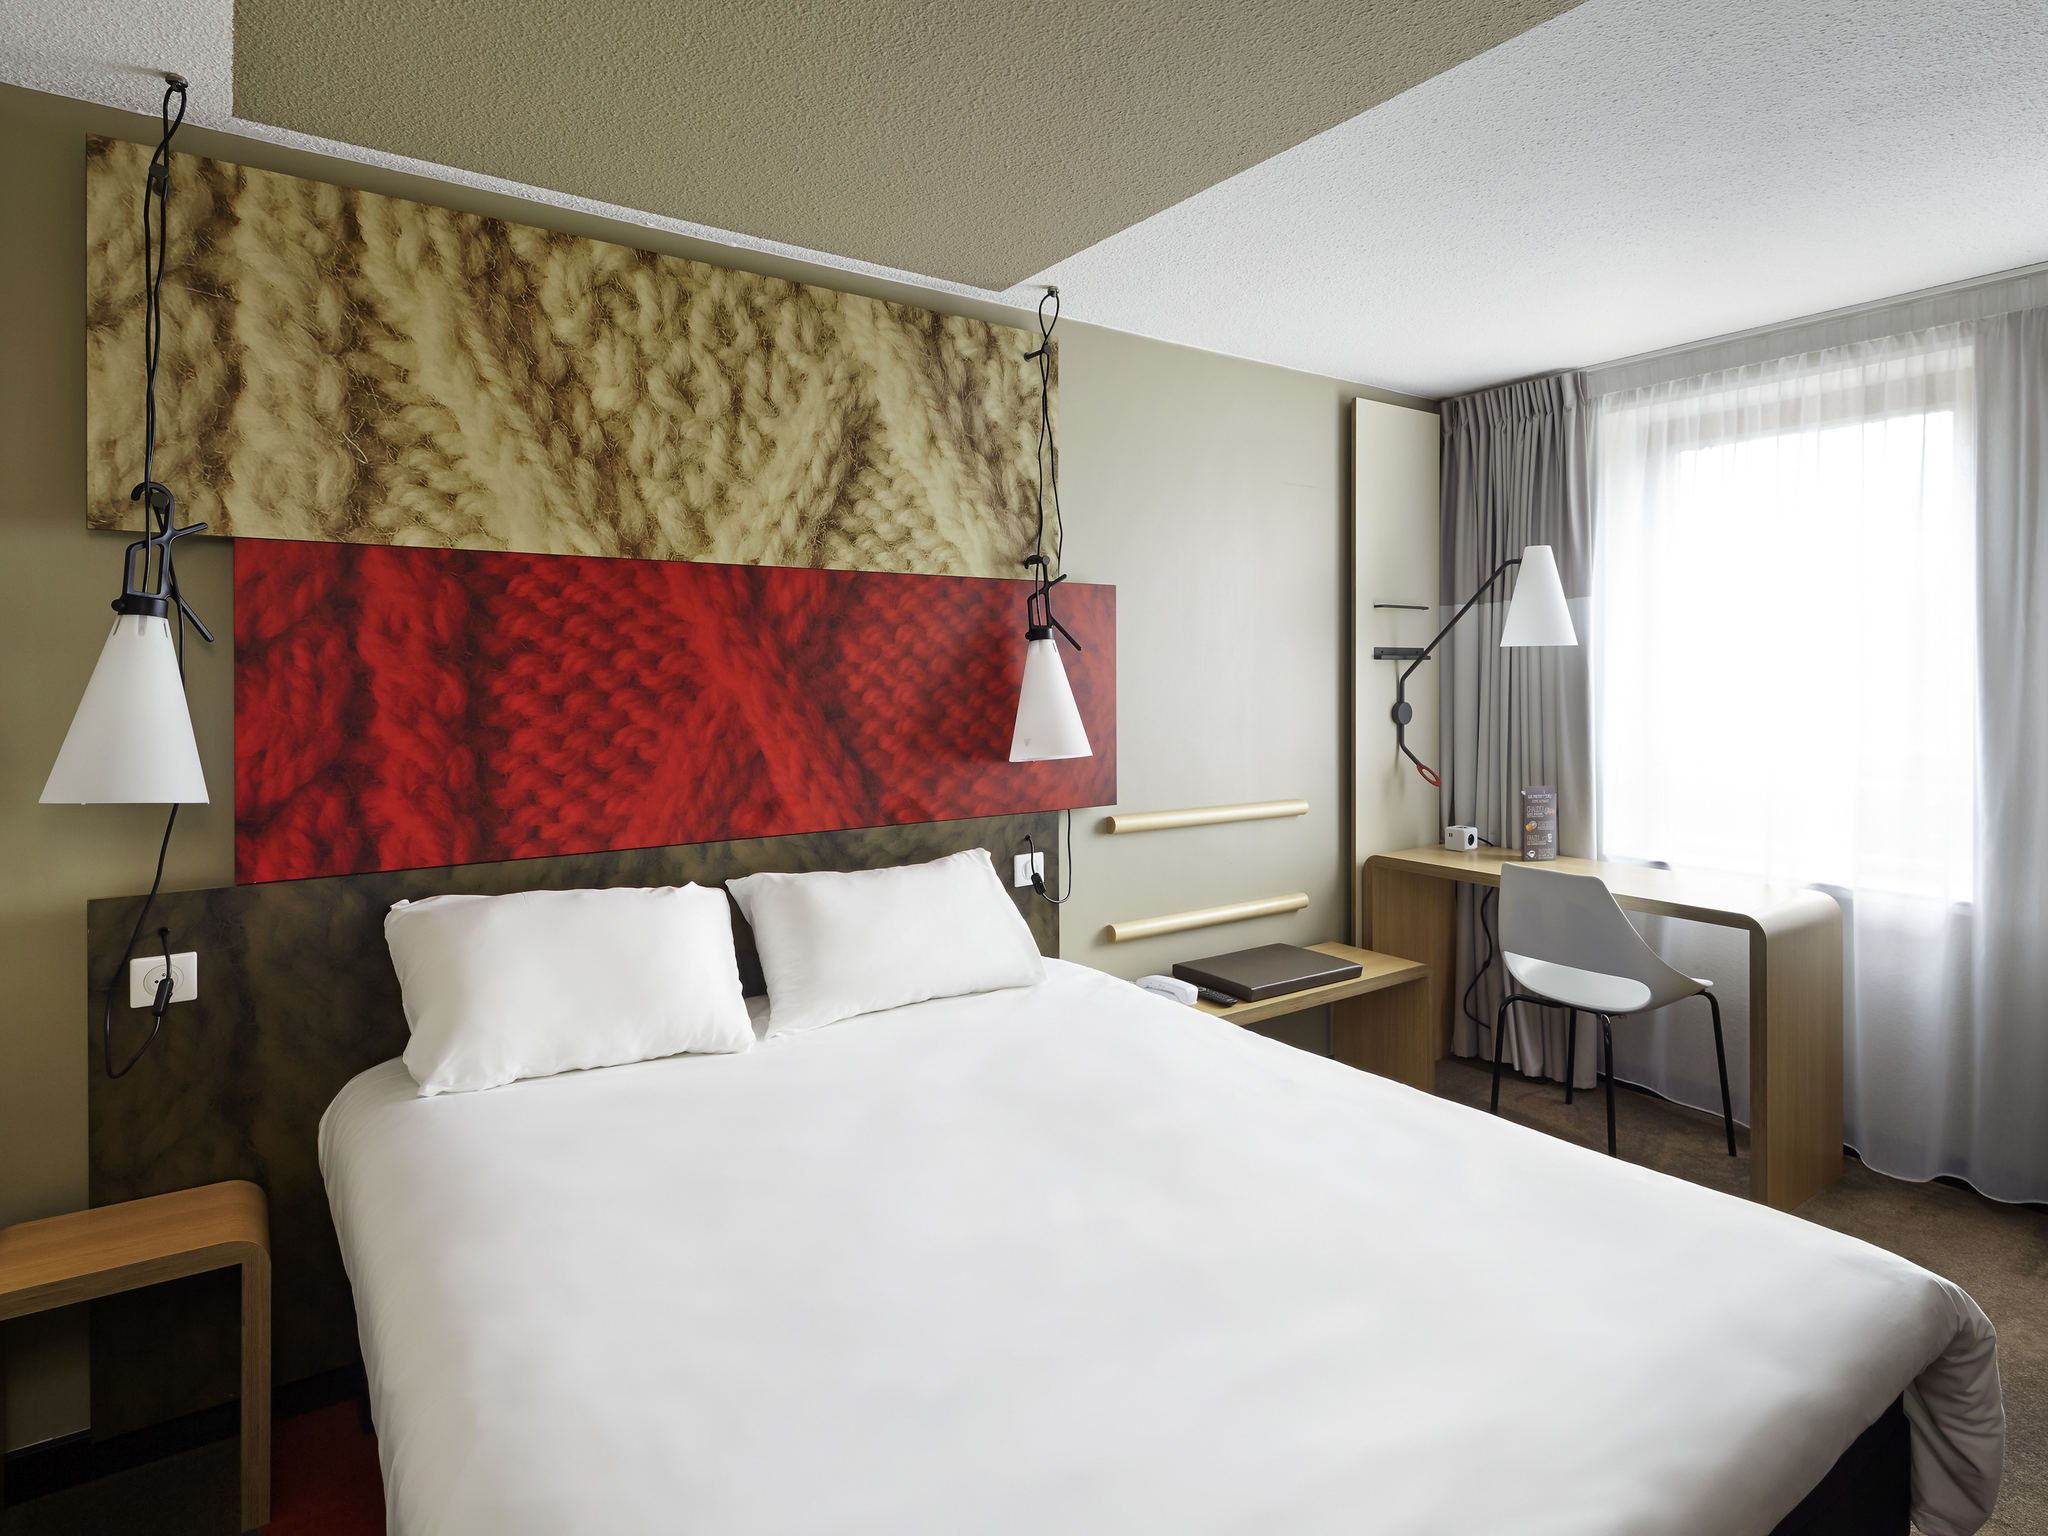 Hotel In Champs Sur Marne Ibis Marne La Vallee Champs